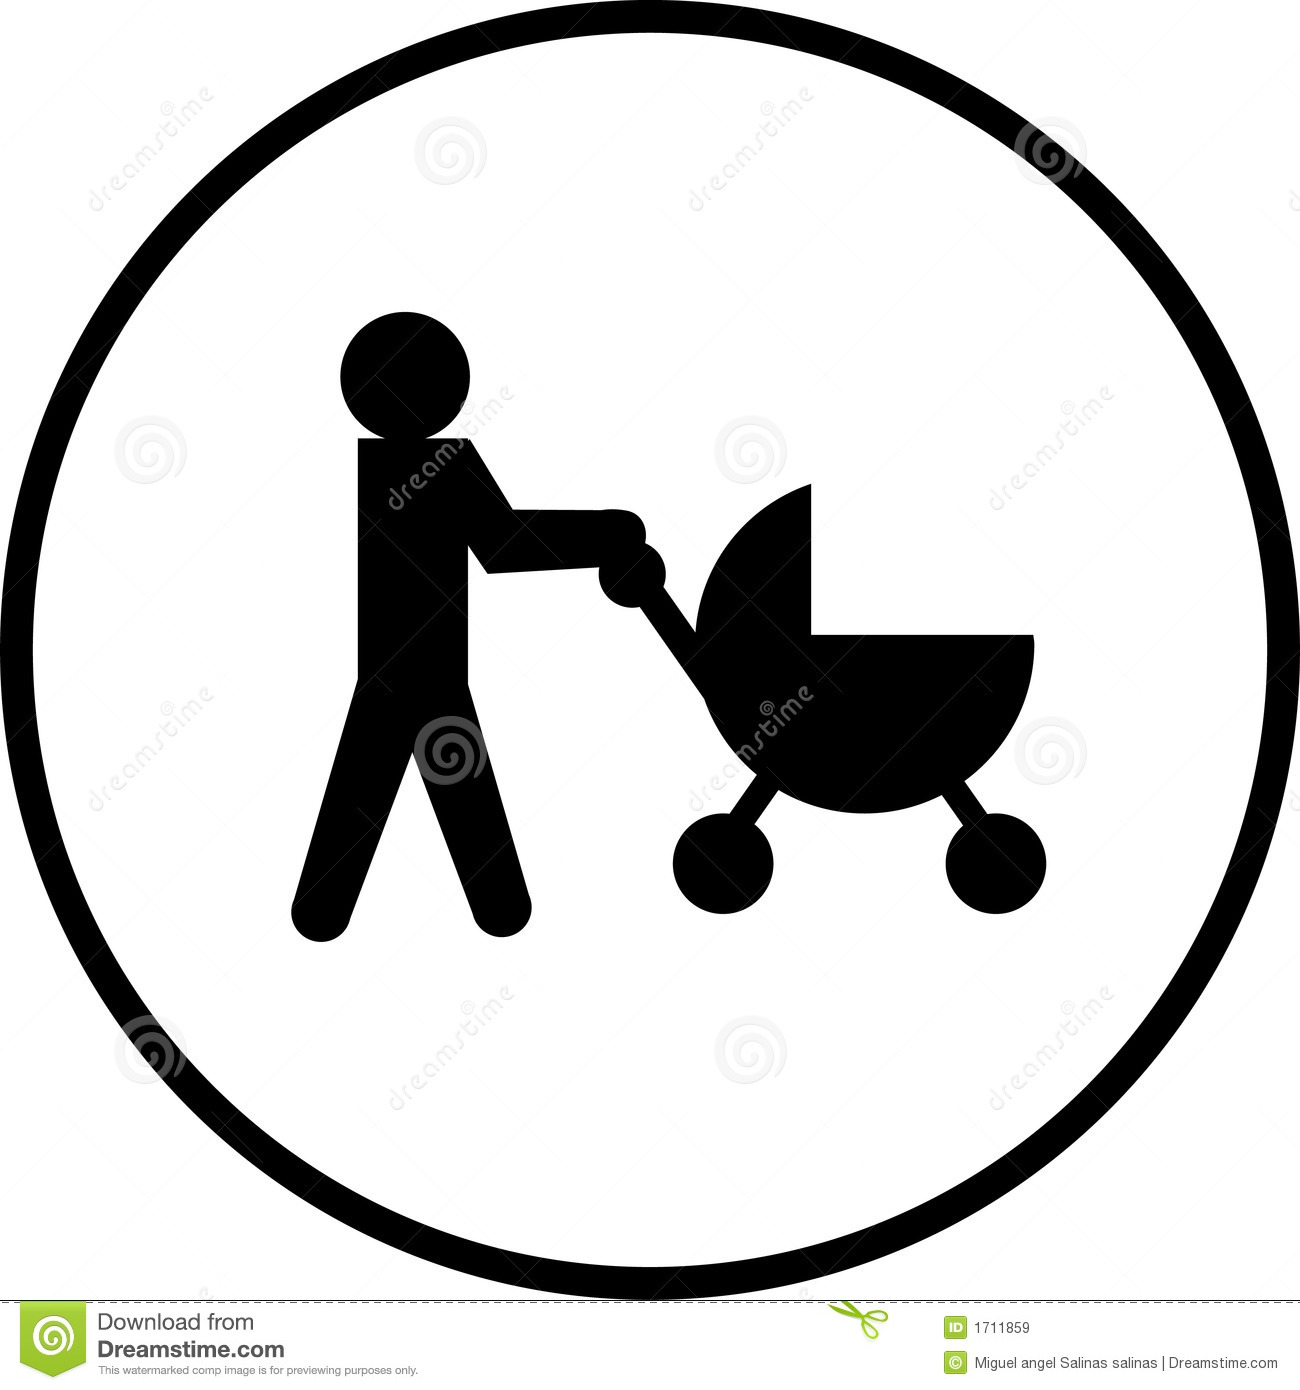 Baby Stroller Vector Symbol Royalty Free Stock Images - Image: 1711859 Happy Child Clipart